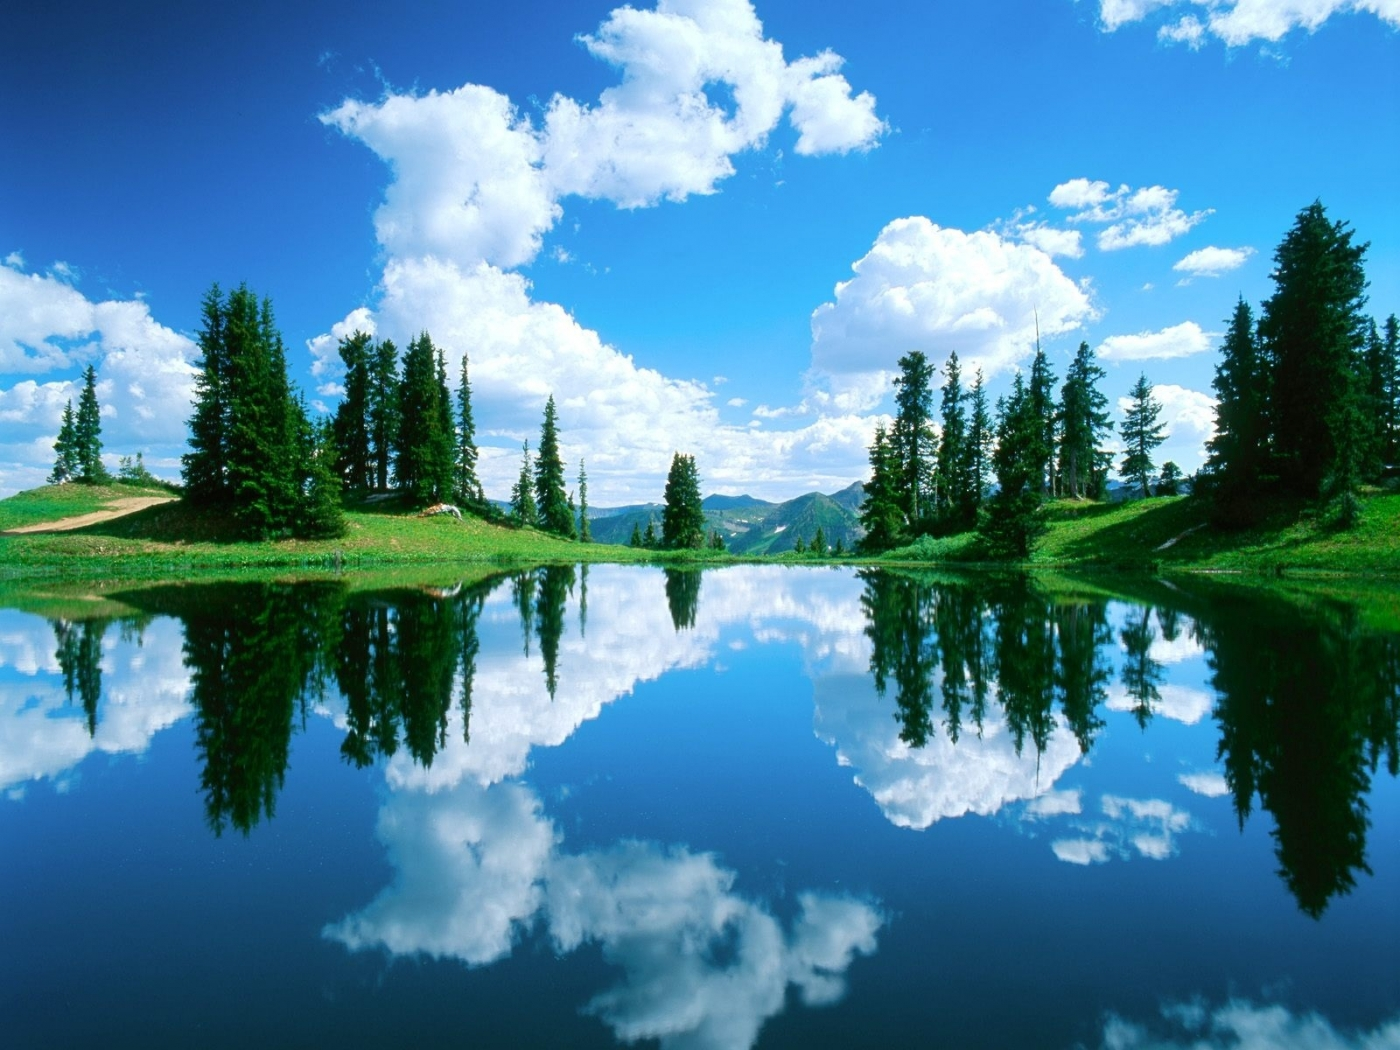 32635 download wallpaper Landscape, Mountains, Lakes screensavers and pictures for free